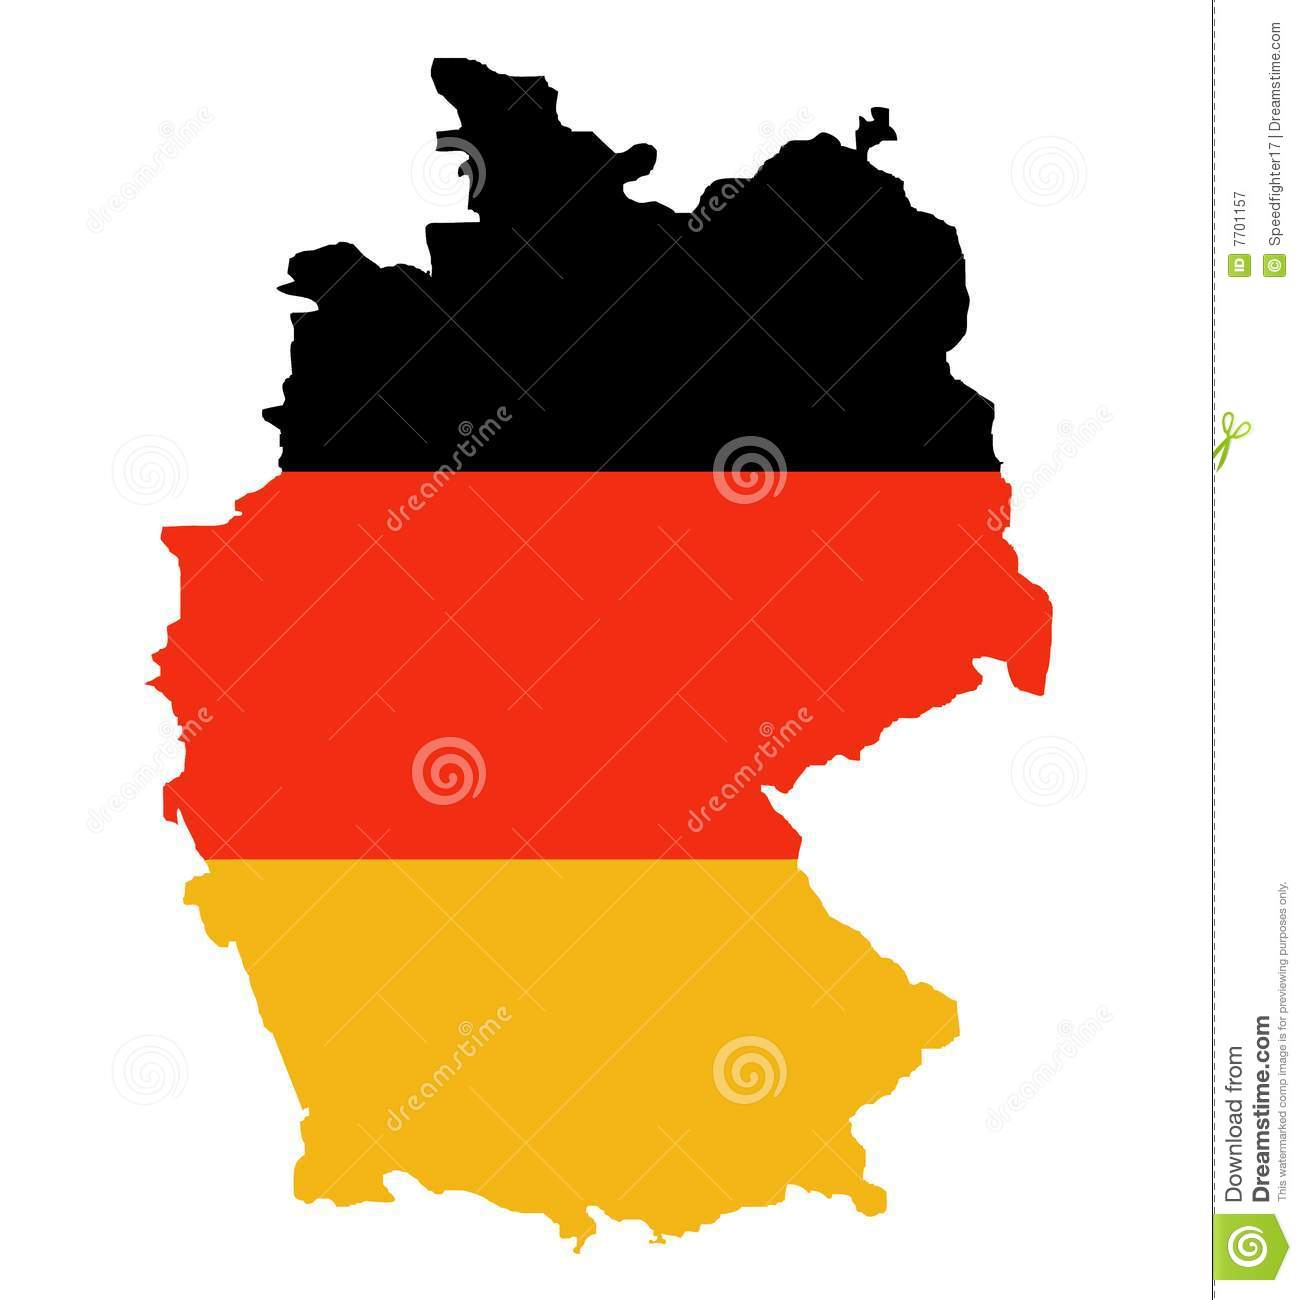 Outline Map Of Federal Republic Of Germany Royalty Free Stock - Germany map download